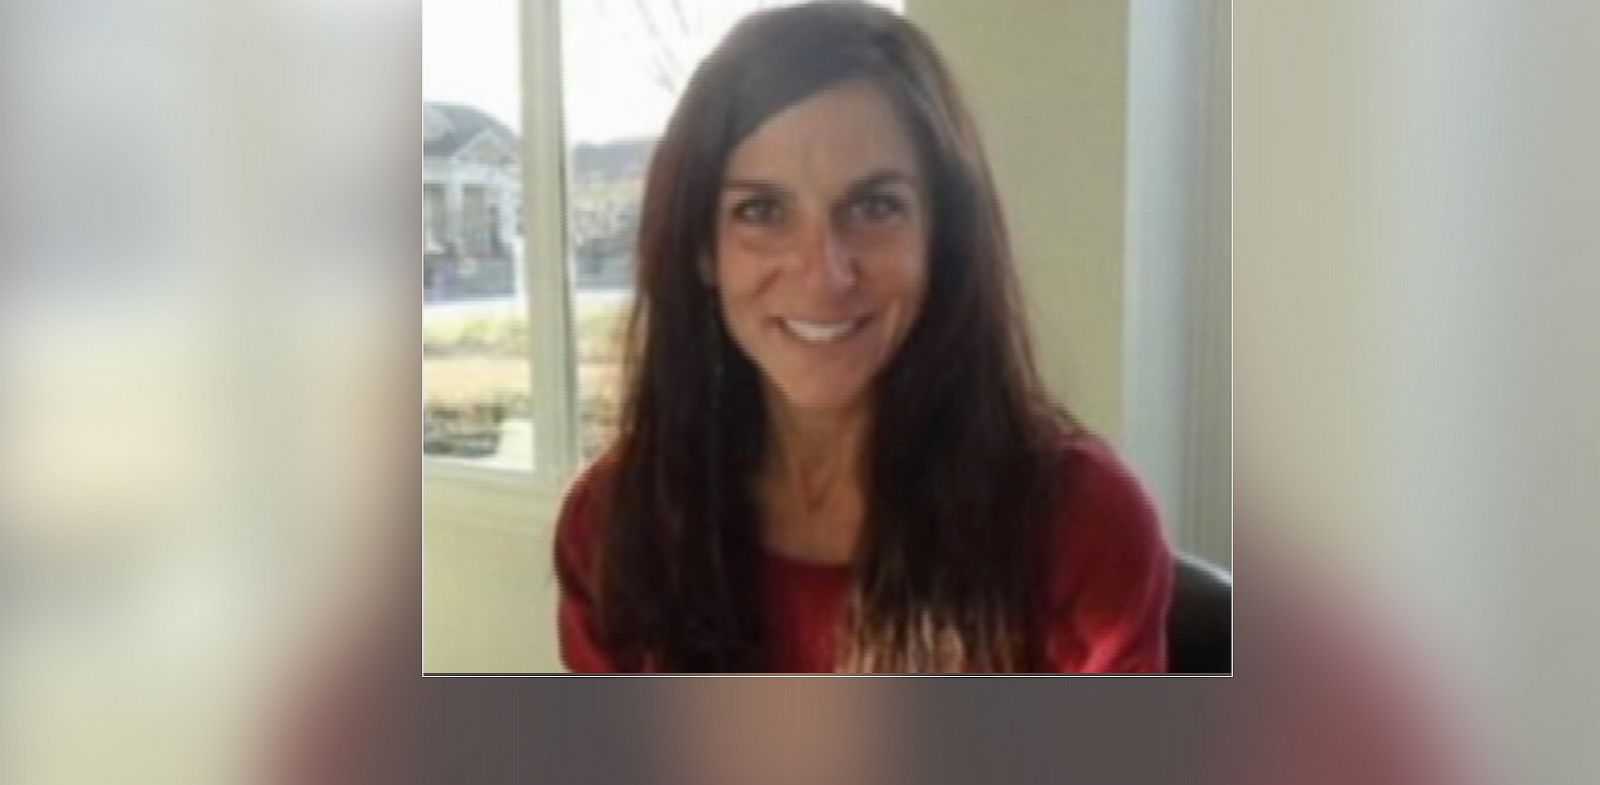 PHOTO: Leanne Hecht Bearden disappeared Jan. 17 while taking a walk, just weeks after returning from a round-the-world trip with her husband.